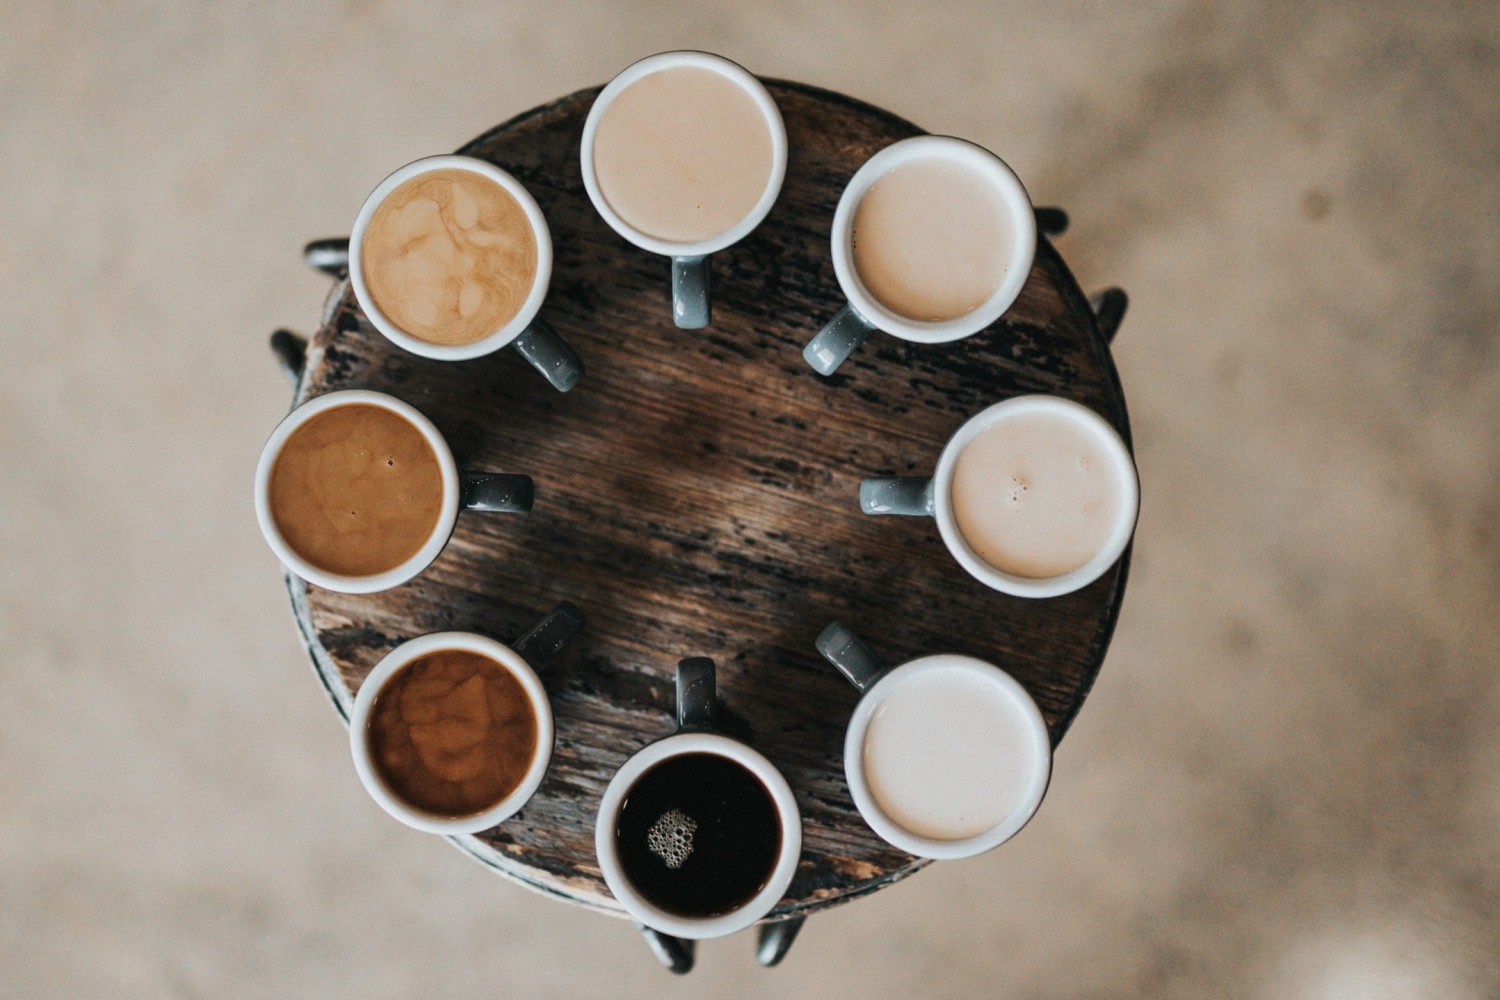 Cups of different coloured coffee on a circular table